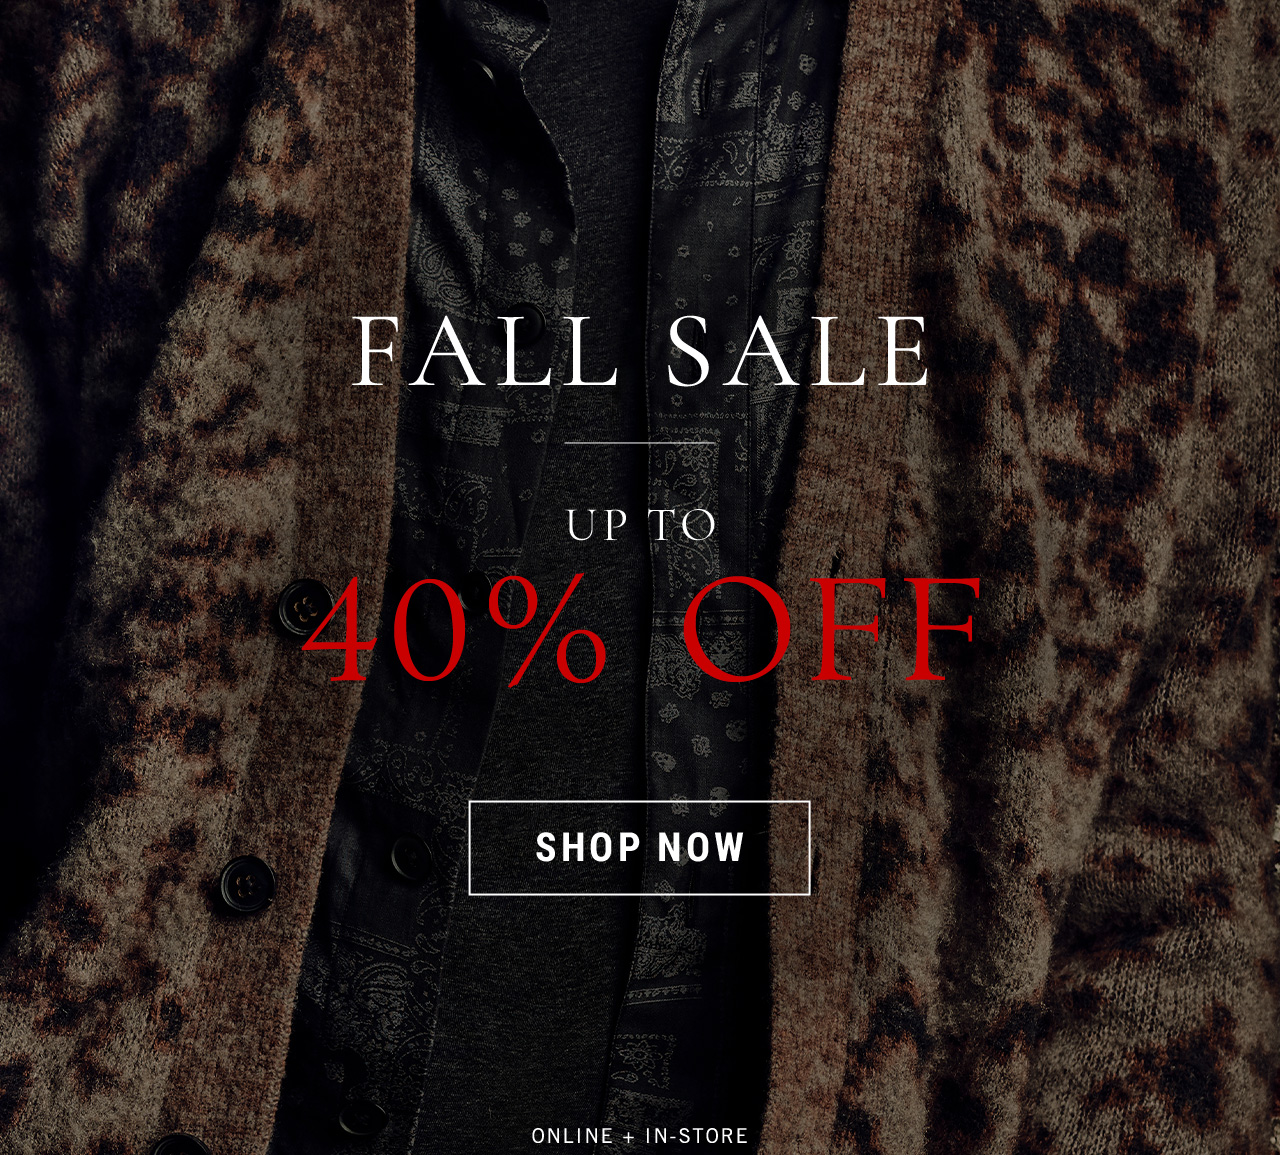 Fall Sale - Up to 40% Off. Shop Now